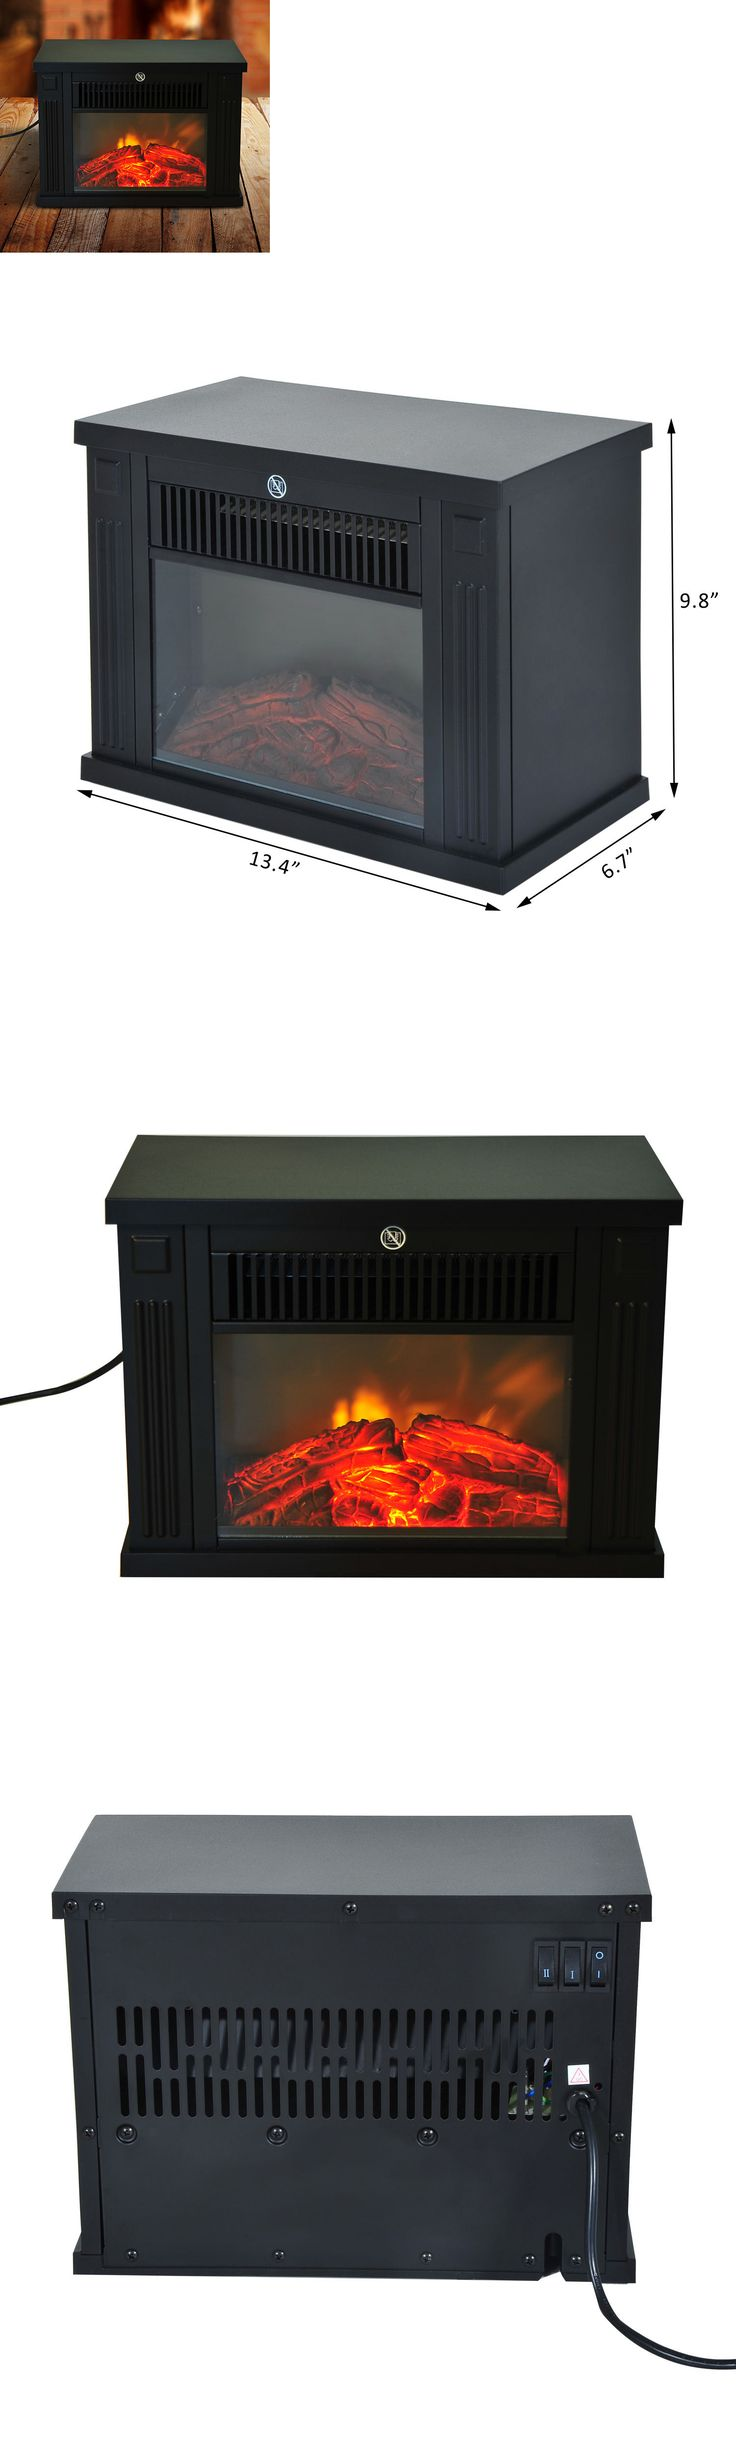 Fireplaces 175756: Portable Electric Fireplace Free Standing Tabletop Heater 1000W Led Fire Flame -> BUY IT NOW ONLY: $36.66 on eBay!